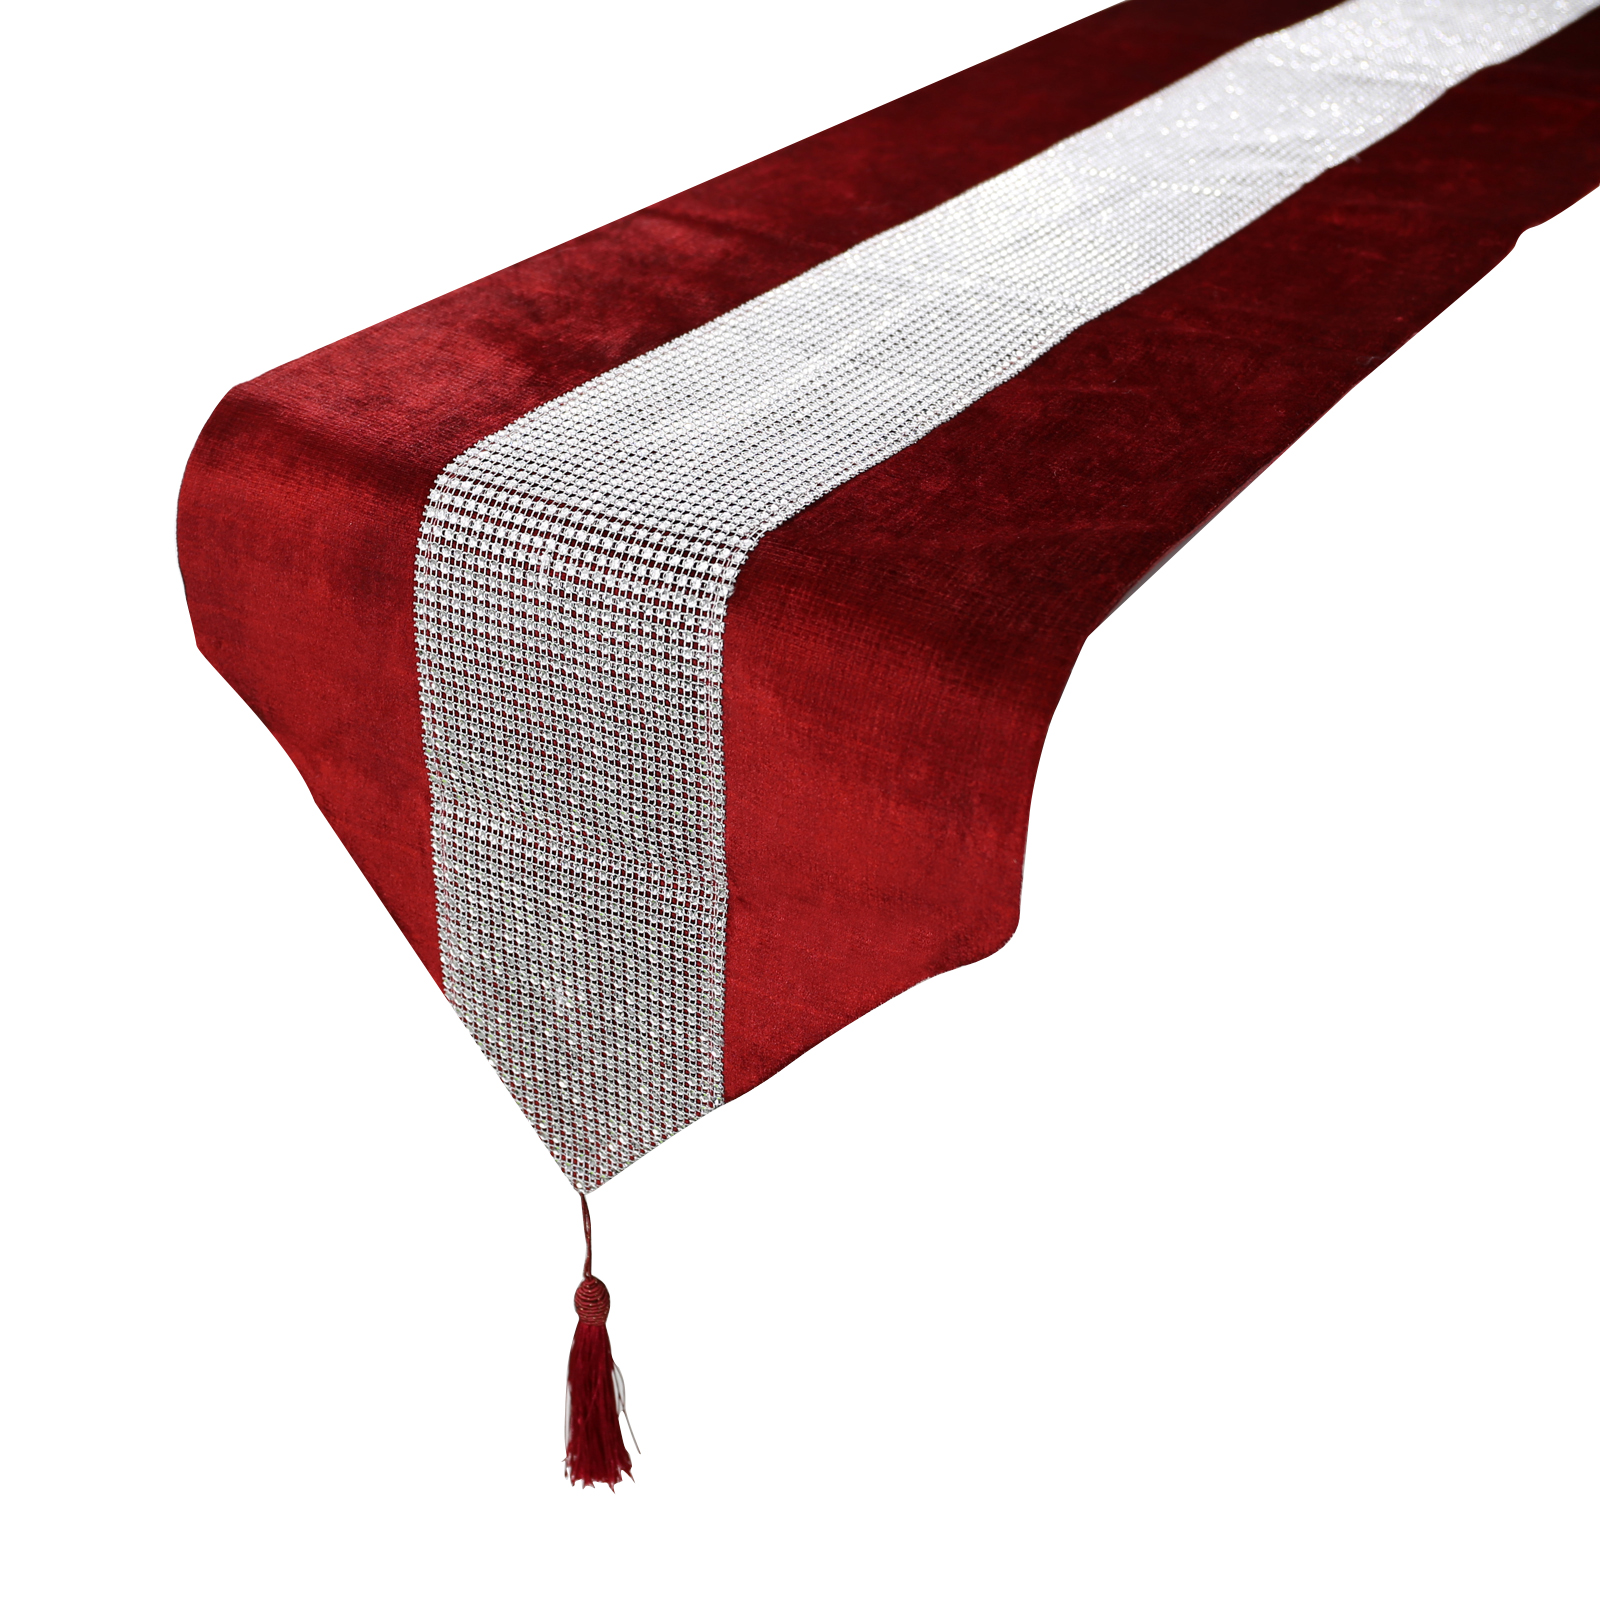 8 Colors Hot Diamante Table Runner Thick Velvet Chenille Satin Tasseled Edge Table Decors Wedding Party Decorations Supply